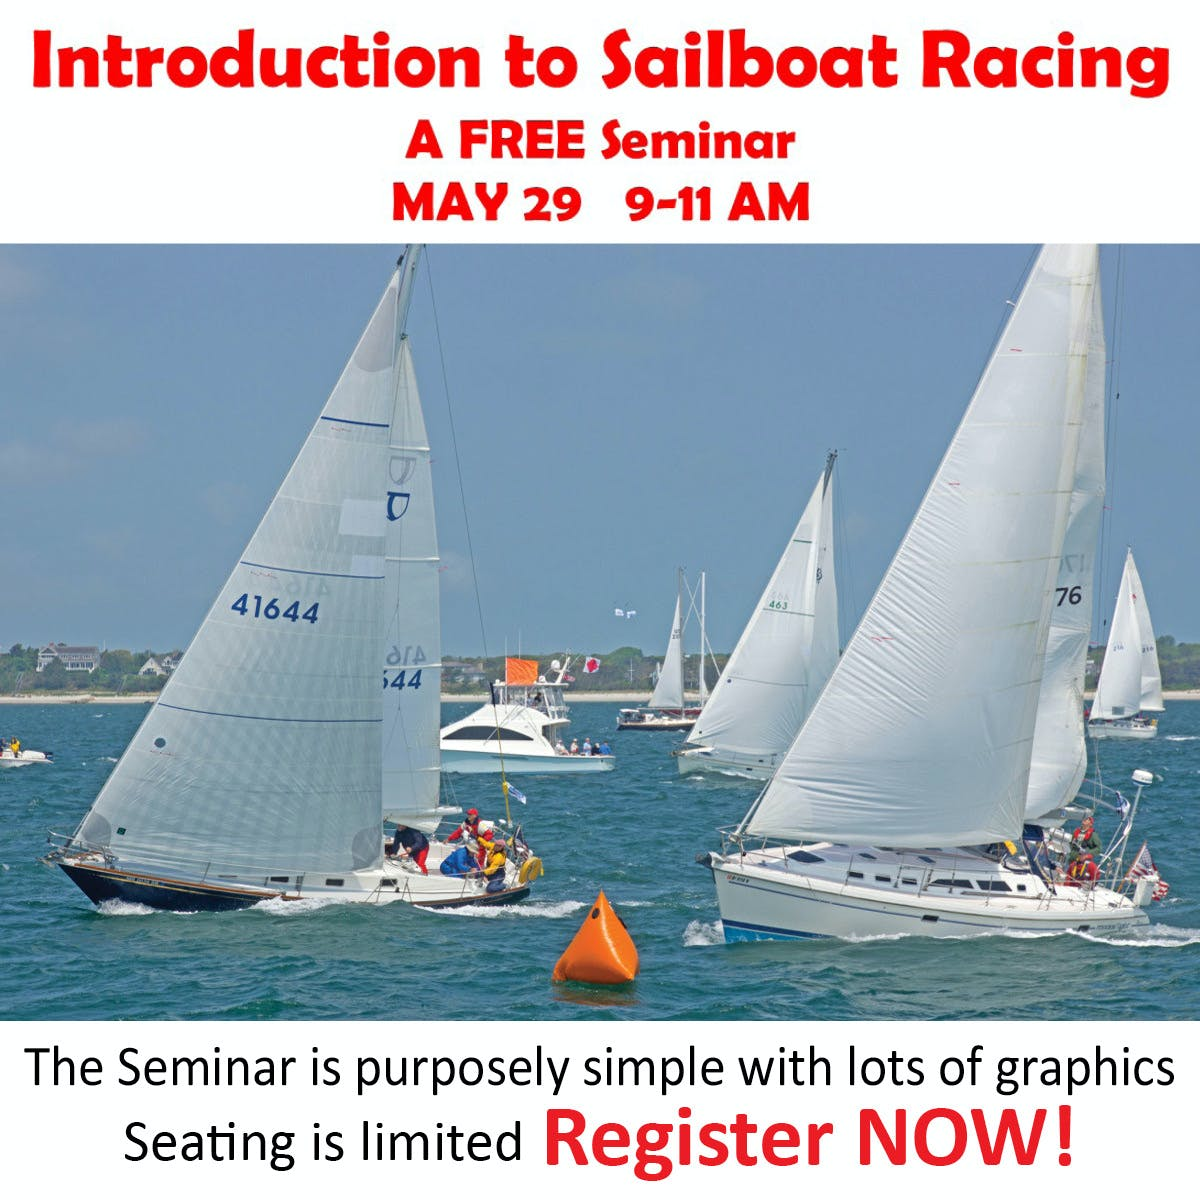 Introduction to Sailboat Racing